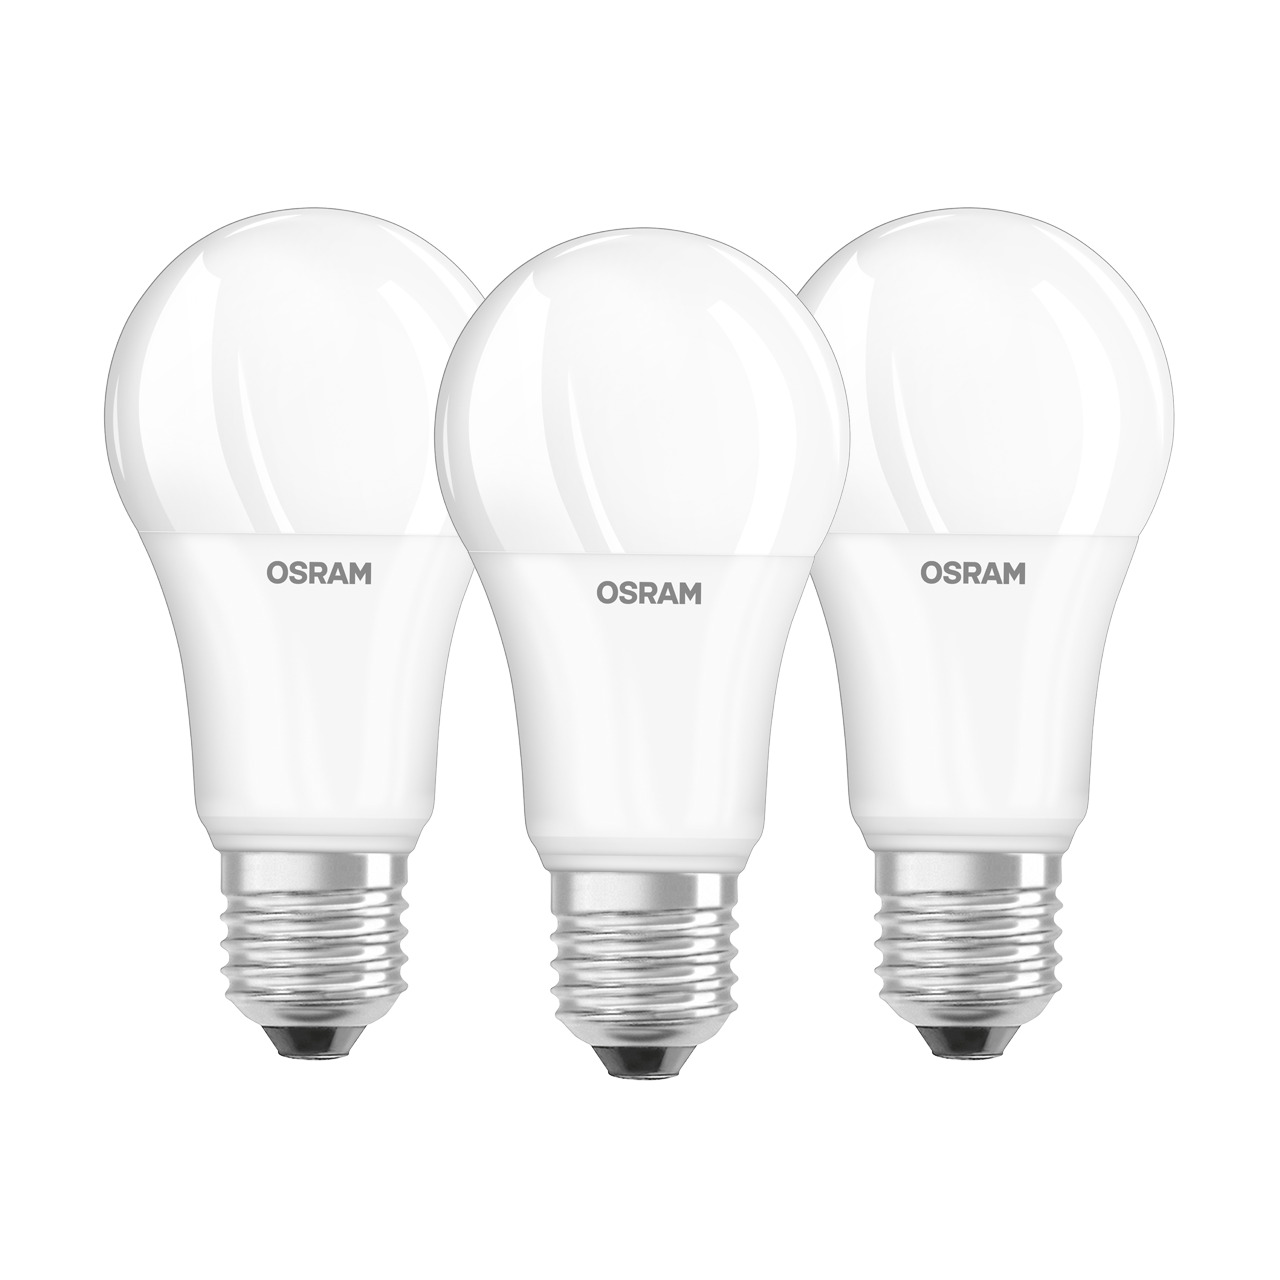 OSRAM LED PROMO 3er Set 14-W-Filament-LED-Lampe E27- warmweiss- matt